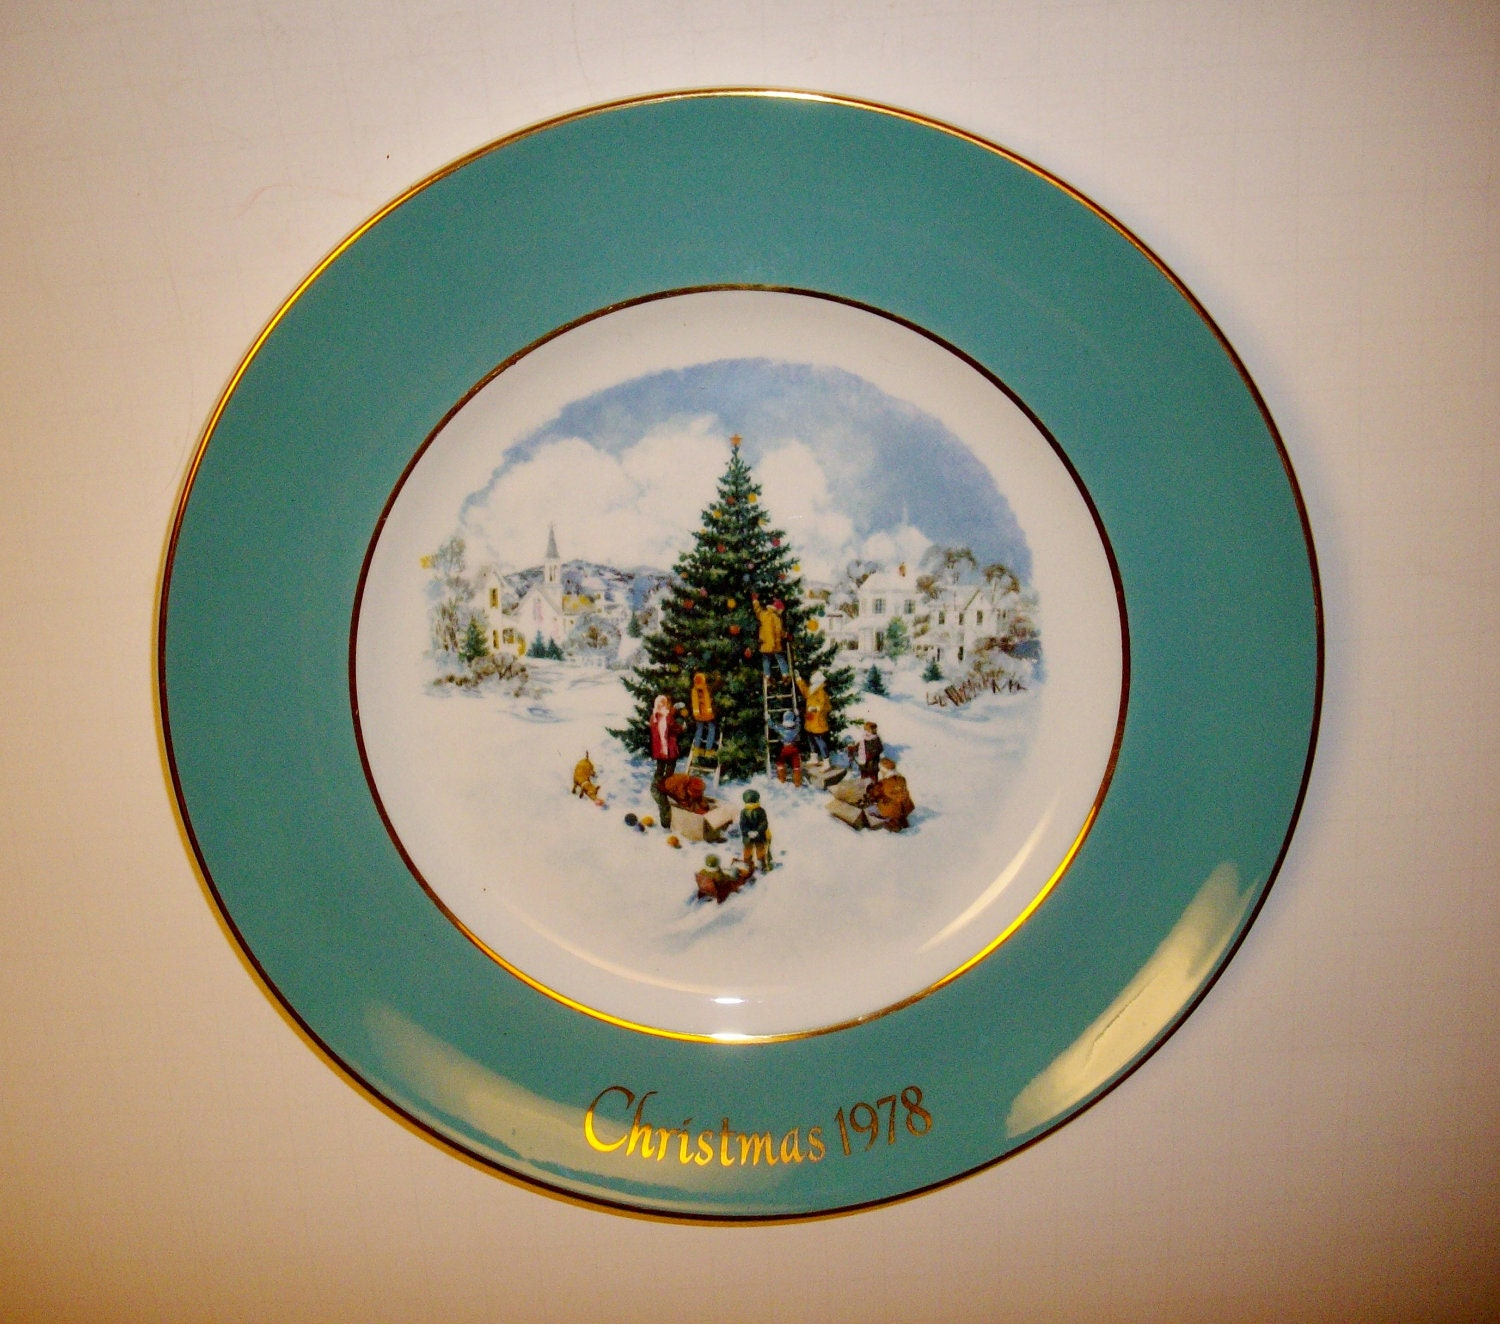 Vintage Avon Turquoise Christmas Plate Collectible 1978 Sixth